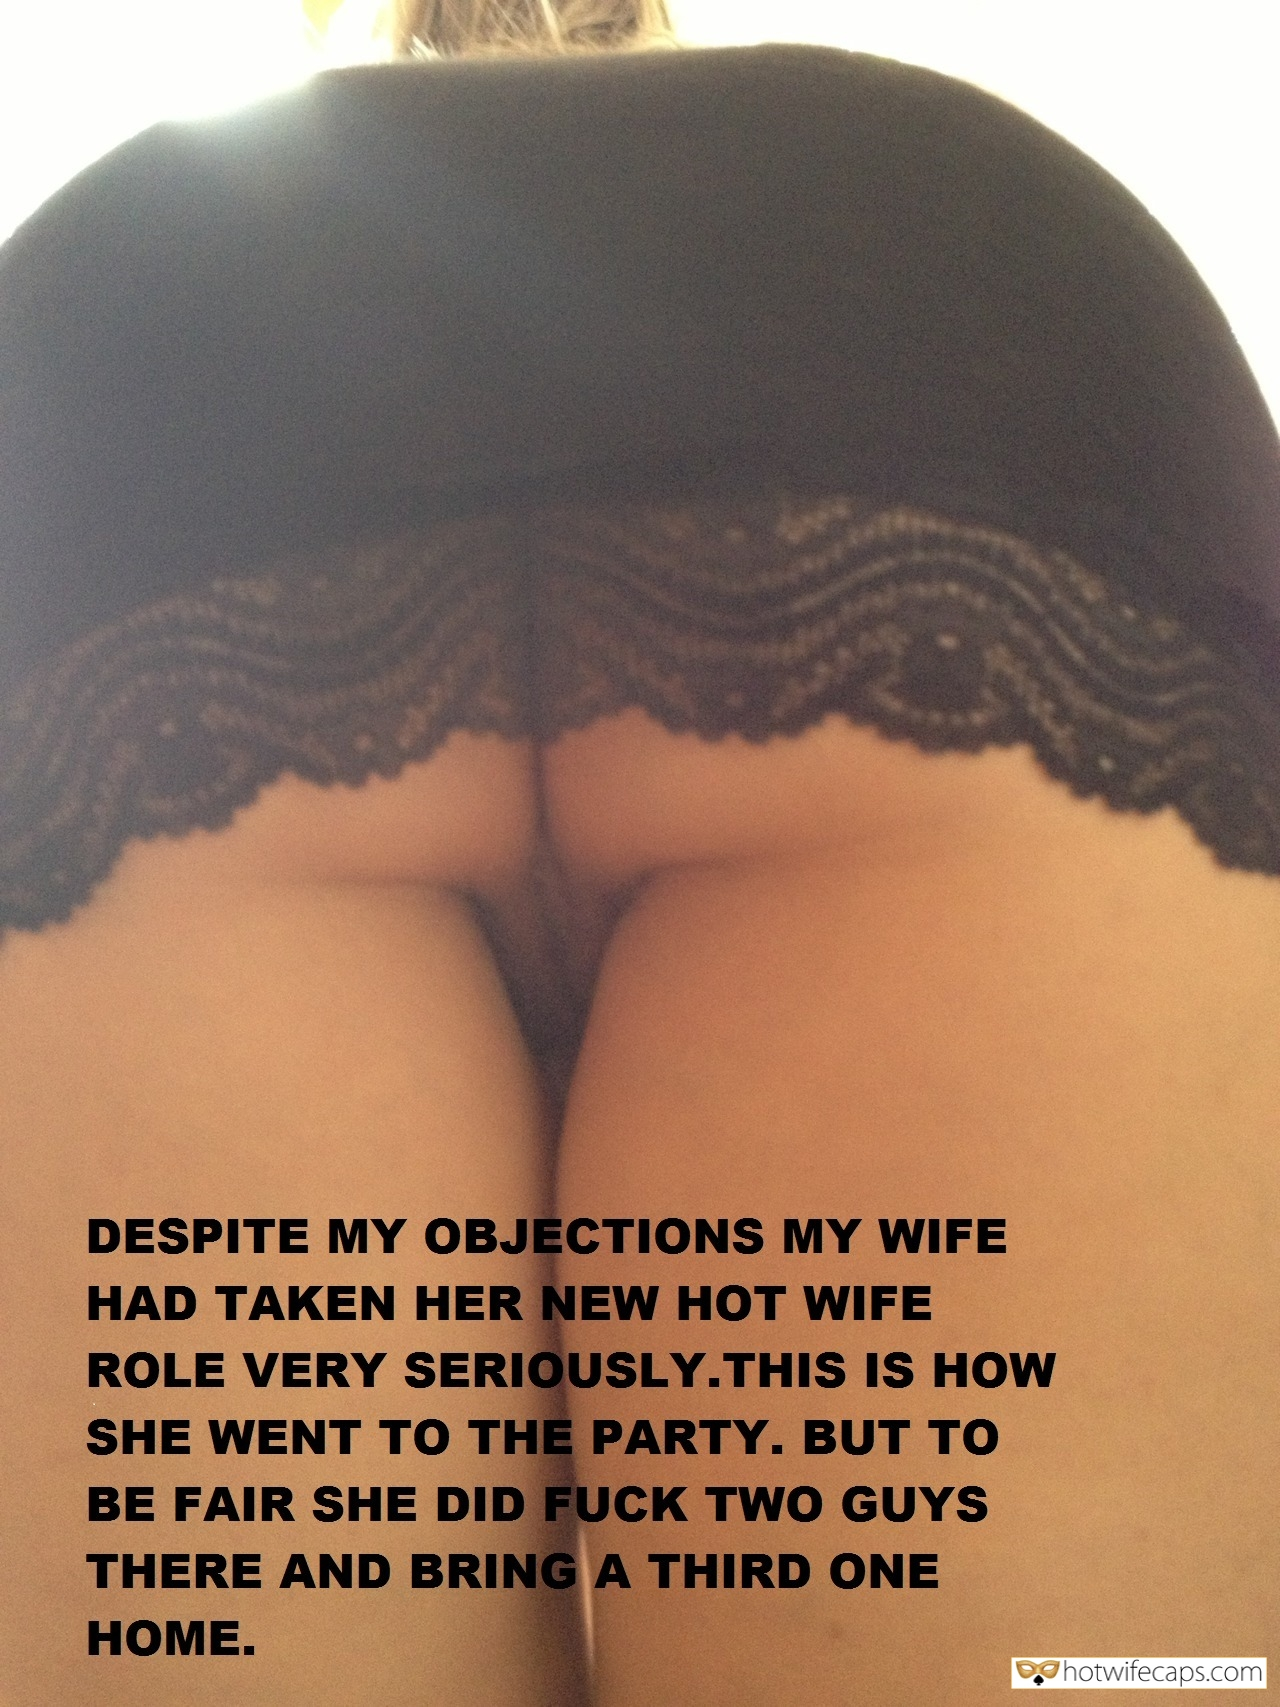 No Panties Flashing hotwife caption: DESPITE MY OBJECTIONS MY WIFE HAD TAKEN HER NEW HOTWIFE ROLE VERY SERIOUSLY. THIS IS HOW SHE WENT TO THE PARTY. BUT TO BE FAIR SHE DID FUCK TWO GUYS THERE AND BRING A THIRD ONE НОME. Pantyless Pussy Got...